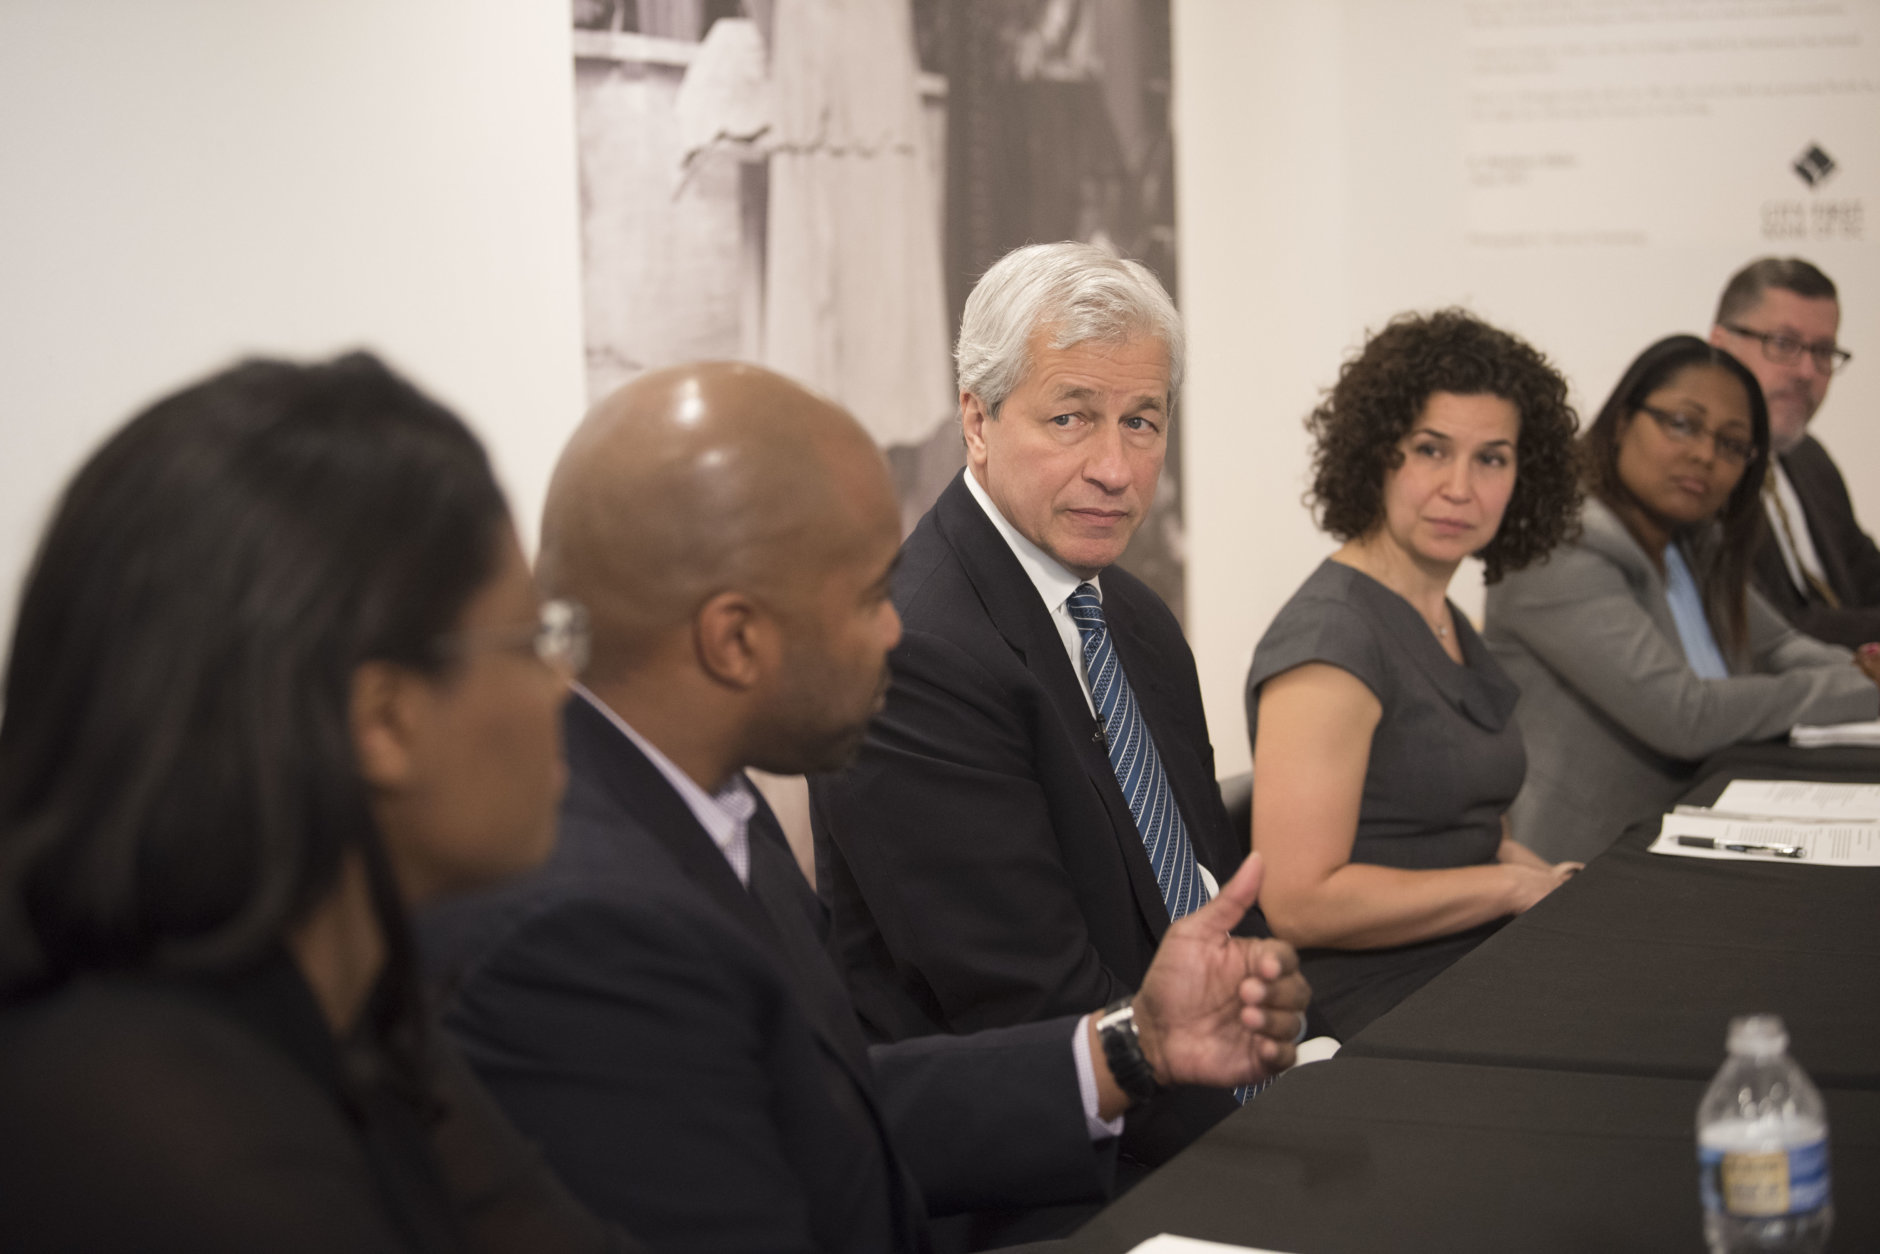 IMAGE DISTRIBUTED FOR JPMORGAN CHASE & CO. - JPMorgan Chase & Co. Chairman and CEO Jamie Dimon, center, takes part in a Community Roundtable/Meet and Greet at the Anacostia Arts Center on Wednesday, April 18, 2018 in Washington. (Kevin Wolf/AP Images for JPMorgan Chase & Co.)